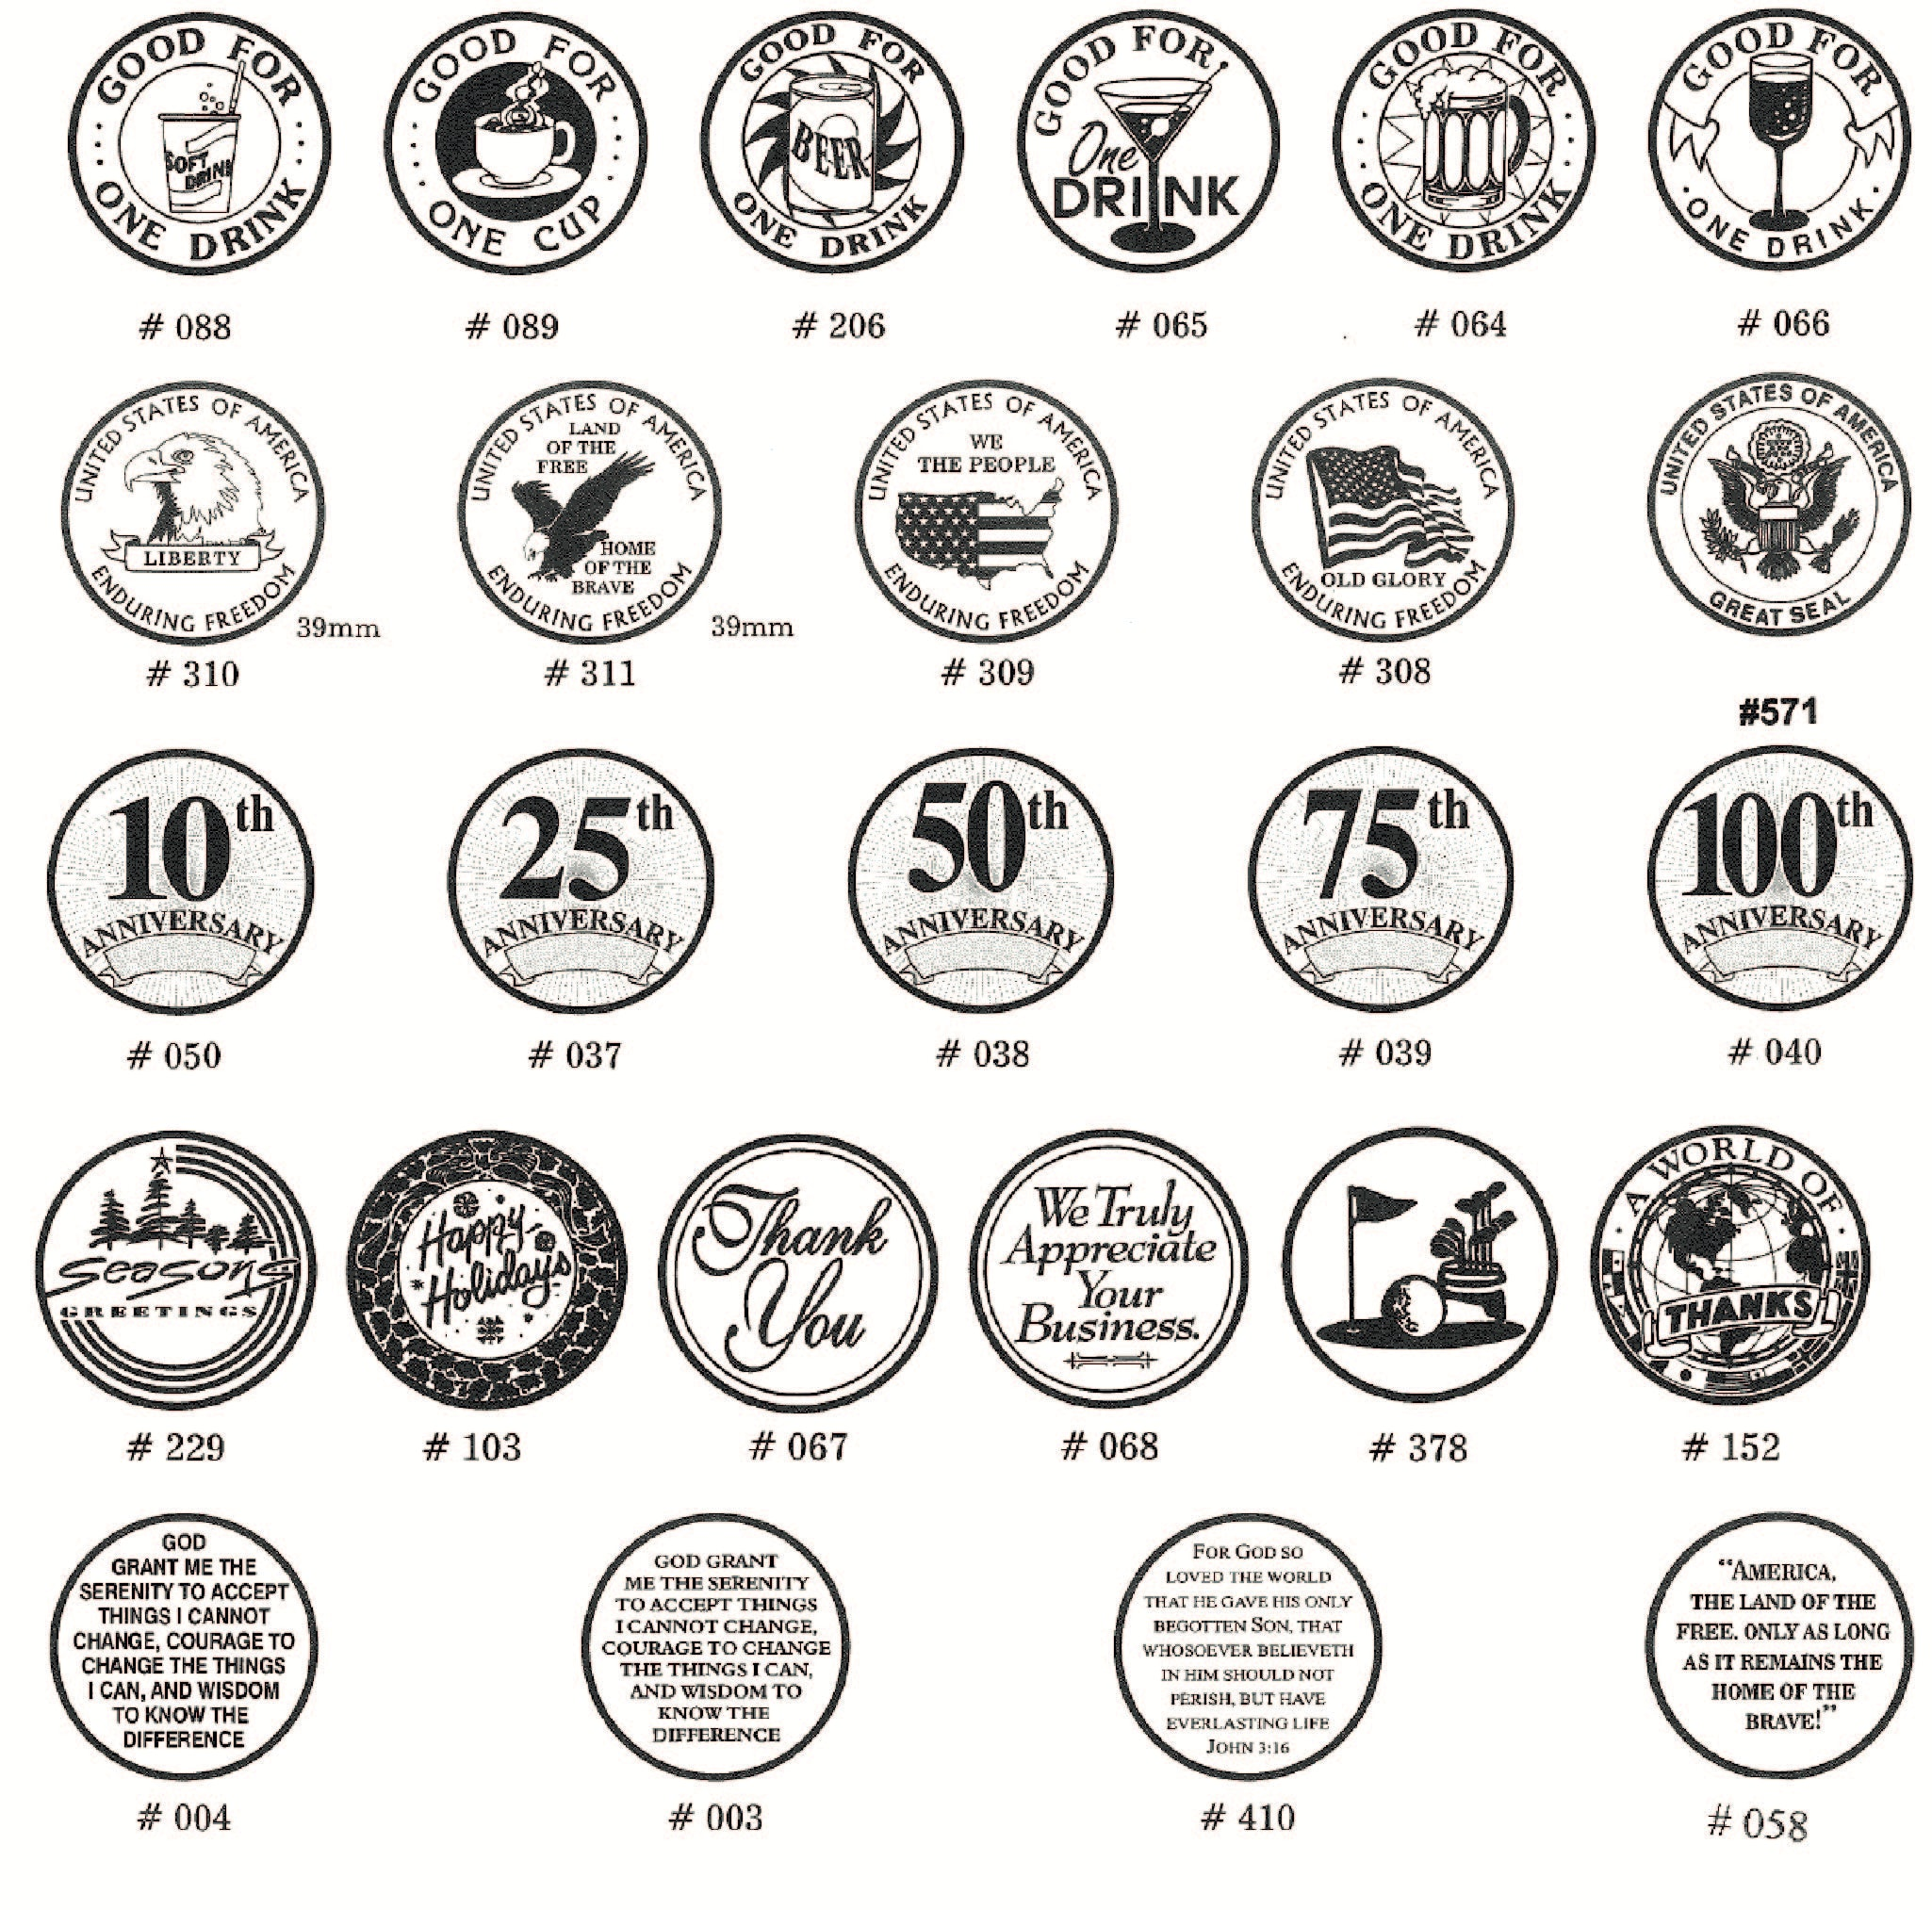 http://files.b-token.ca/files/283/original/Aluminium tokens standard designs.jpg?1568724142